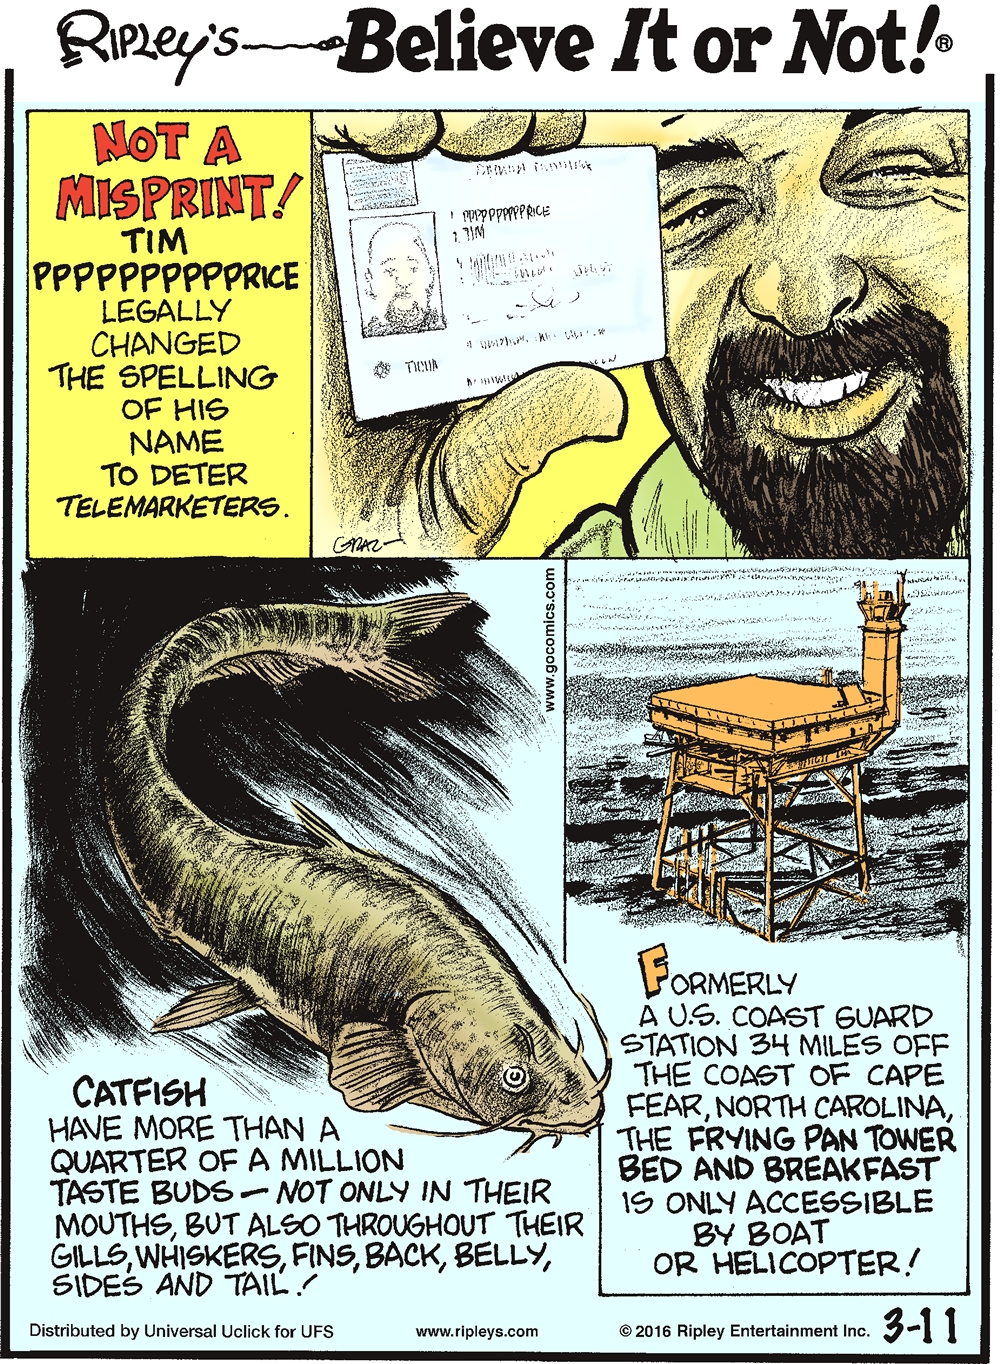 Not a misprint! Tim Pppppppppprice legally changed the spelling of his name to deter telemarketers. --------------------- Catfish have more than a quarter of a million taste buds—not only in their mouths, but also throughout their gills, whiskers, fins, back, belly, sides and tail! --------------------- Formerly a US Coast Guard stations 34 miles off the coast of Cape Fear, North Carolina, the Frying Pan Tower bed and breakfast is only accessible by boat or helicopter!